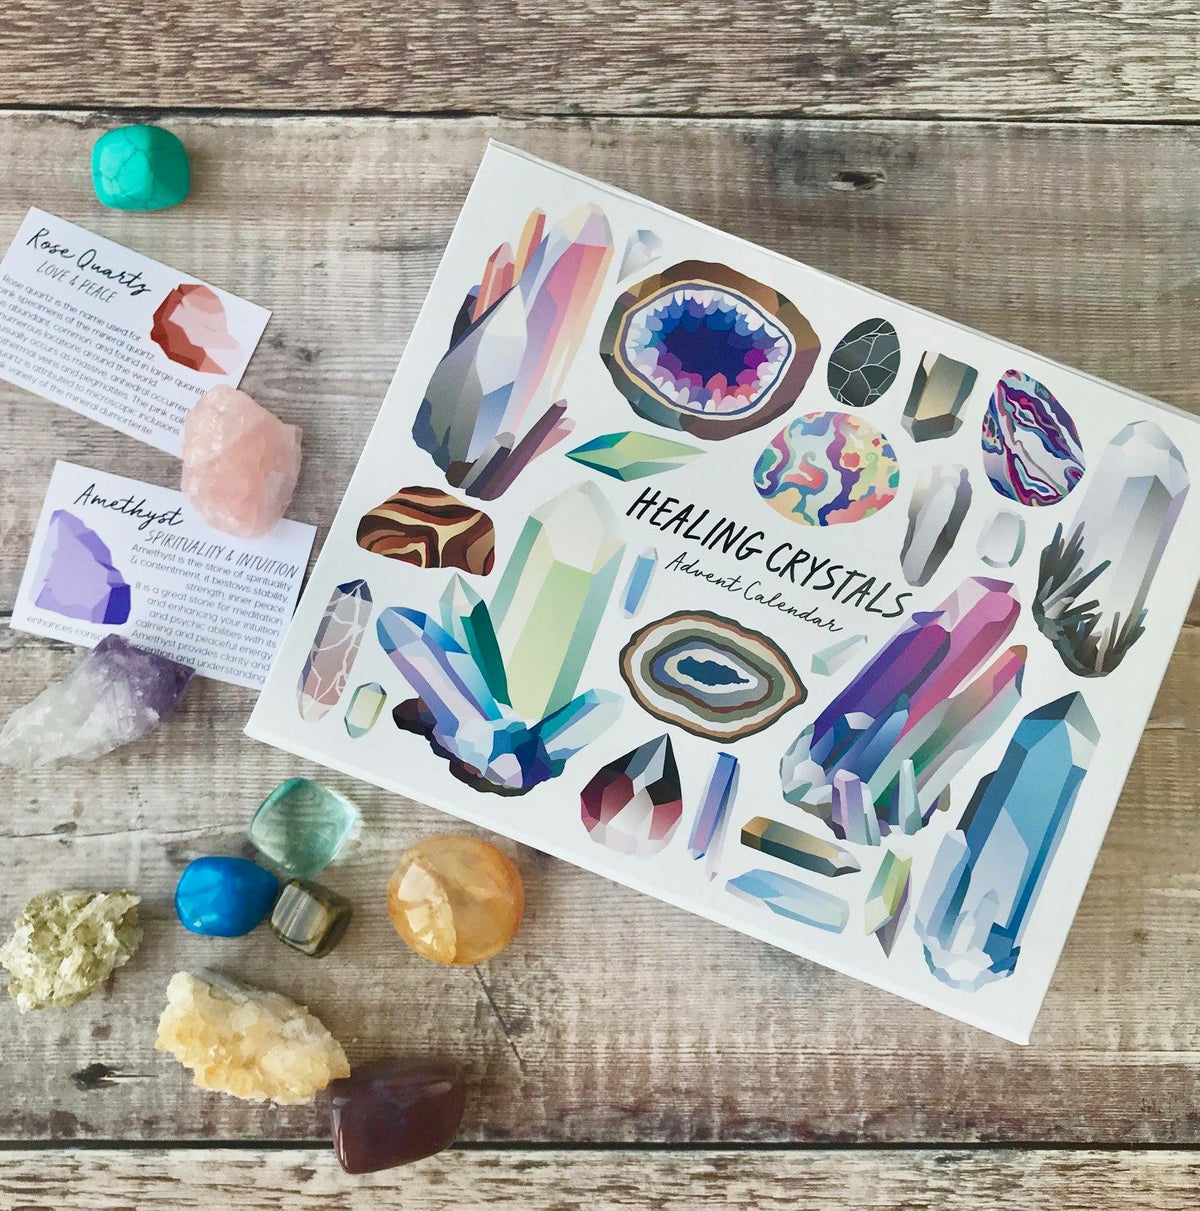 Healing Crystal Advent Calendar PRE-ORDER FOR 2021